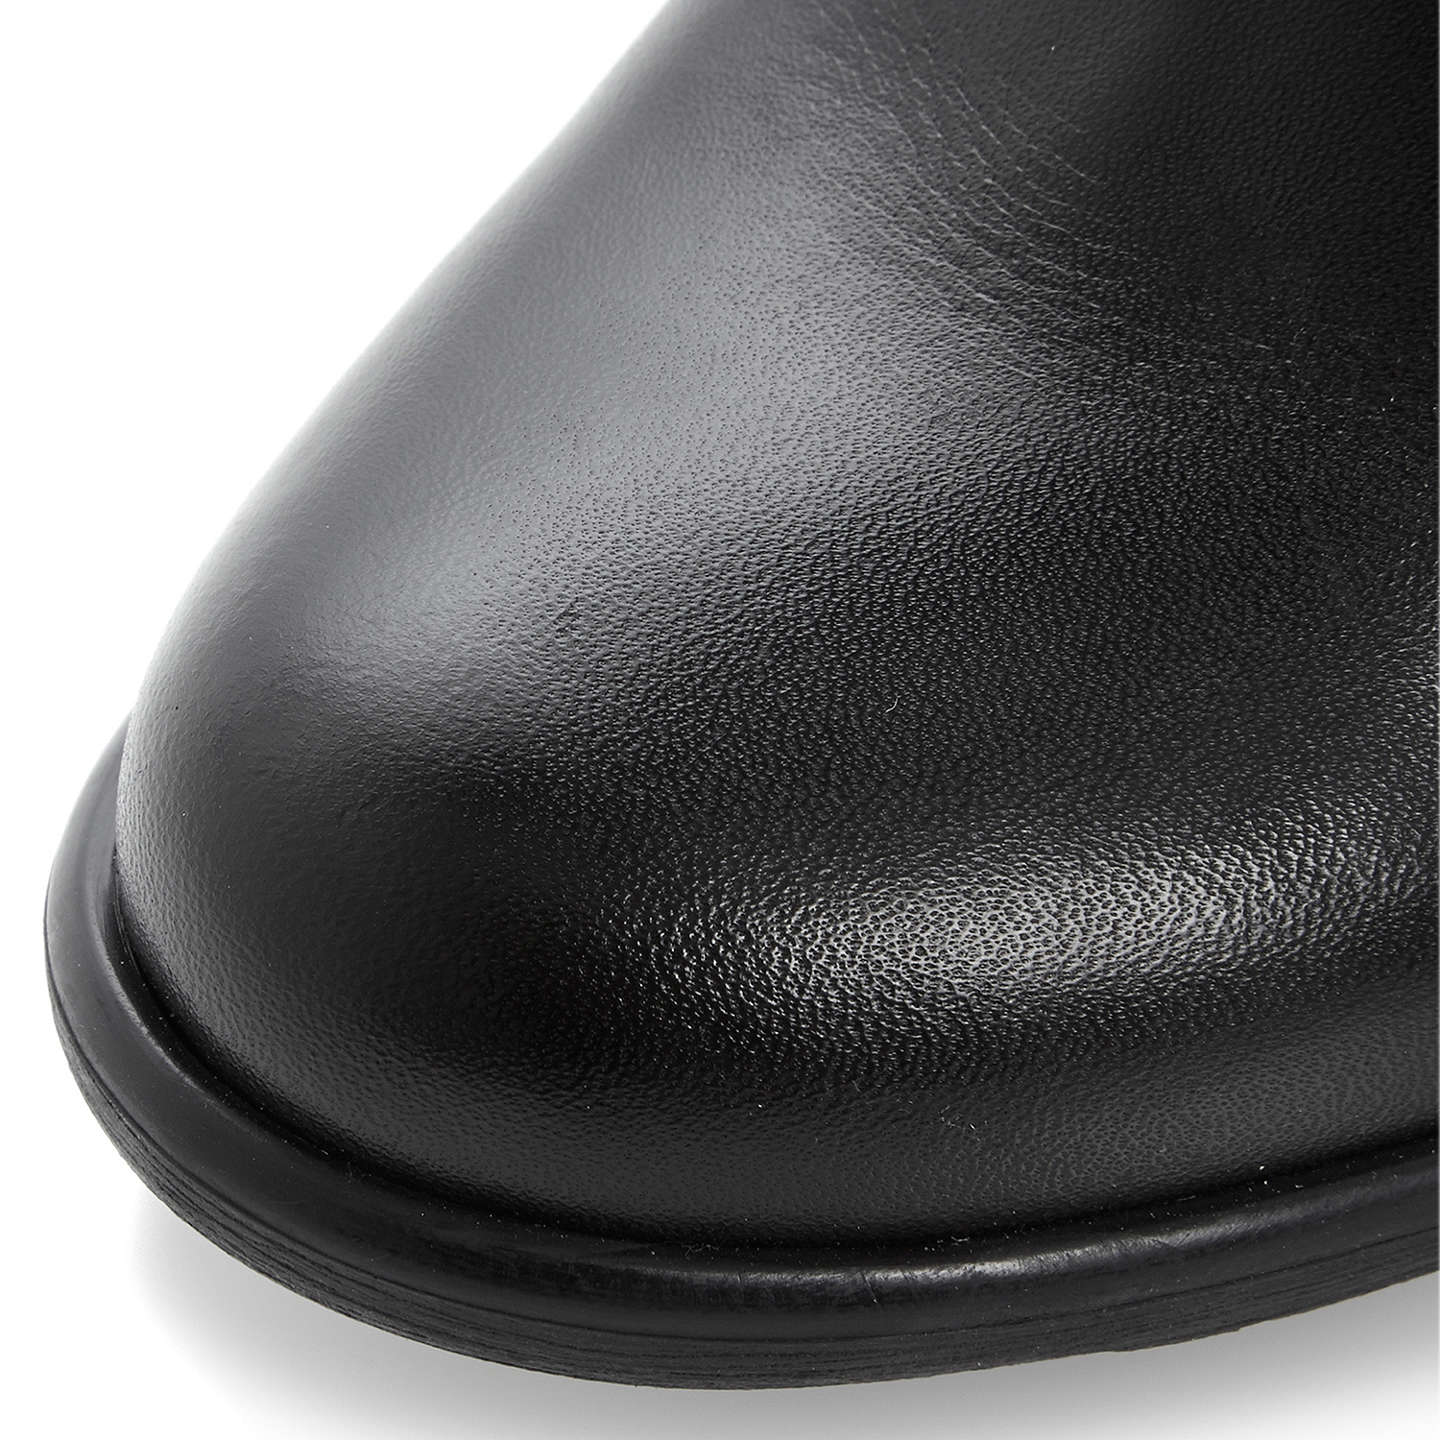 BuyDune Trudy Stretch Panel Block Heel Over the Knee Boots, Black Leather, 3 Online at johnlewis.com